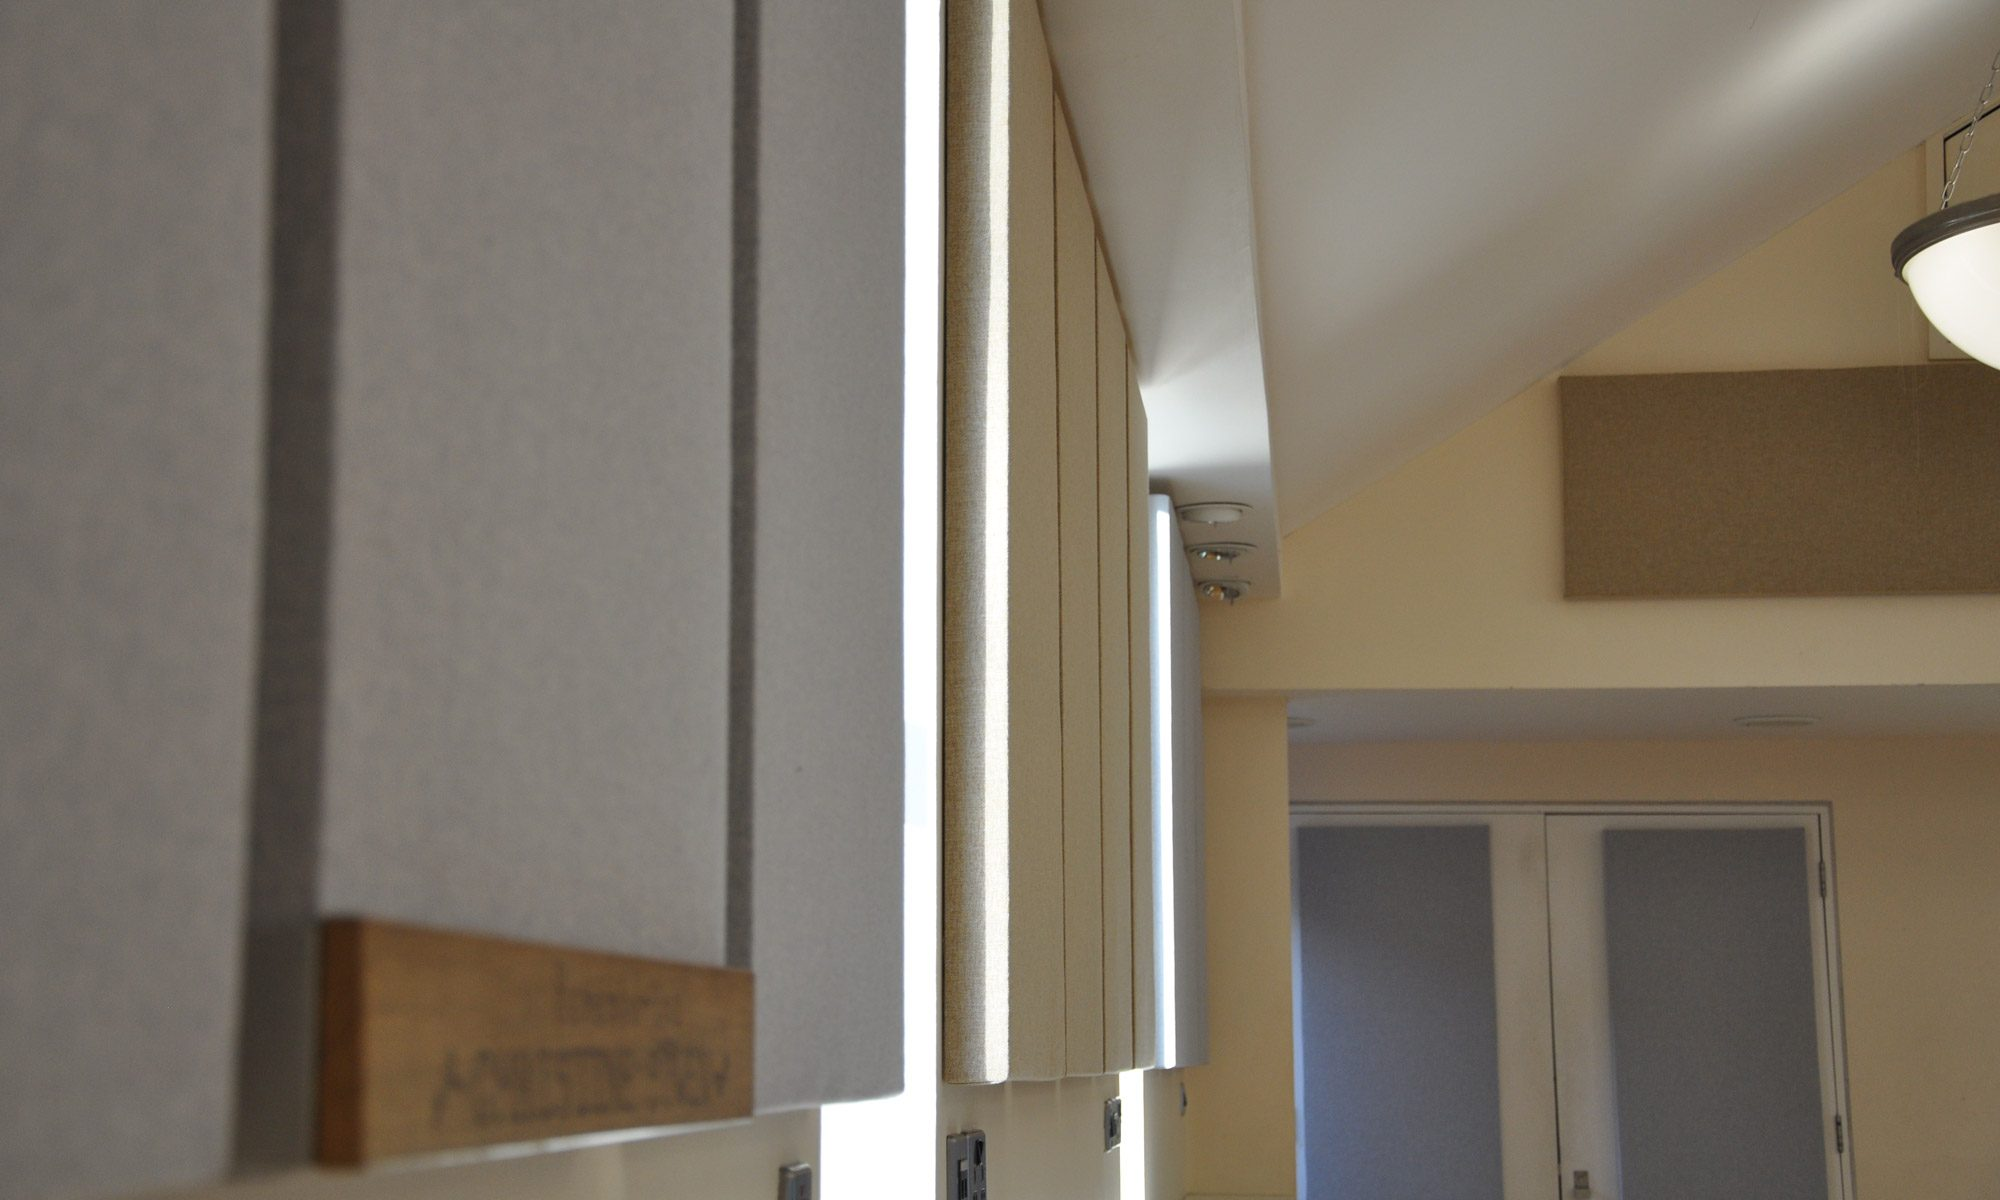 Acoustic panels installed at Ashford Hall to control sound reverberation